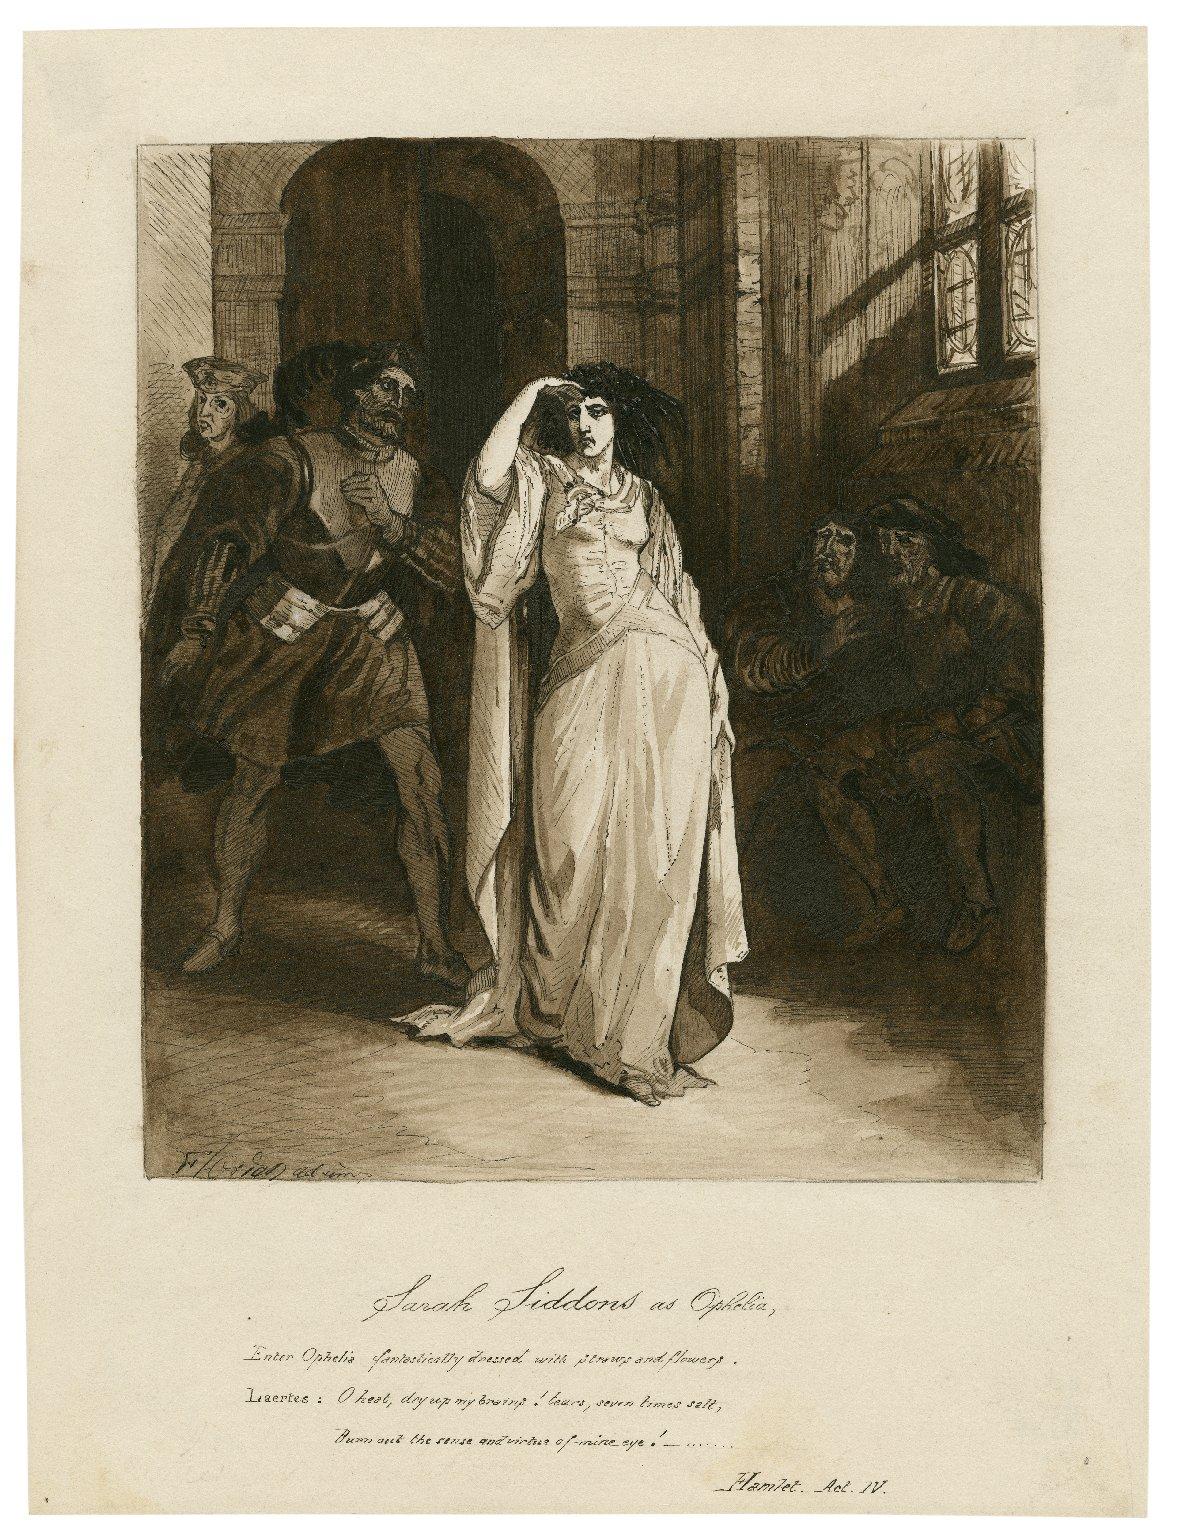 """Sarah Siddons as Ophelia in Shakespeare's Hamlet. Enter Ophelia, fantastically dressed with straws and flowers. Laertes: """"O heat, dry up my brains! tears, seven times salt, burn out the sense and virtue of mine eye!..."""" [graphic]."""